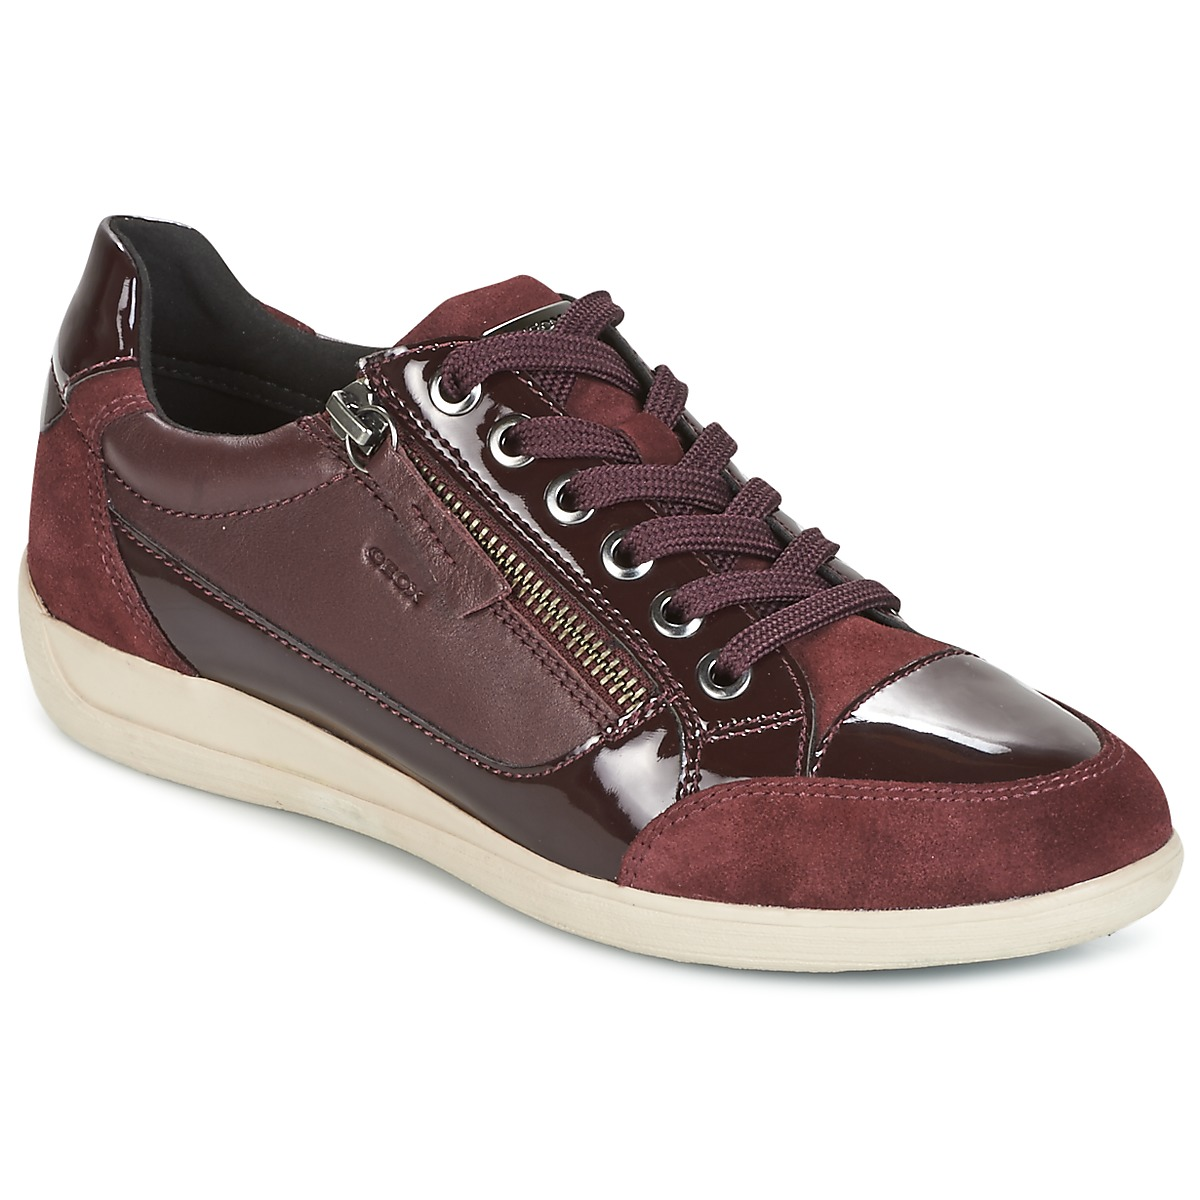 Geox D MYRIA Bordeaux Baskets Basses Femme